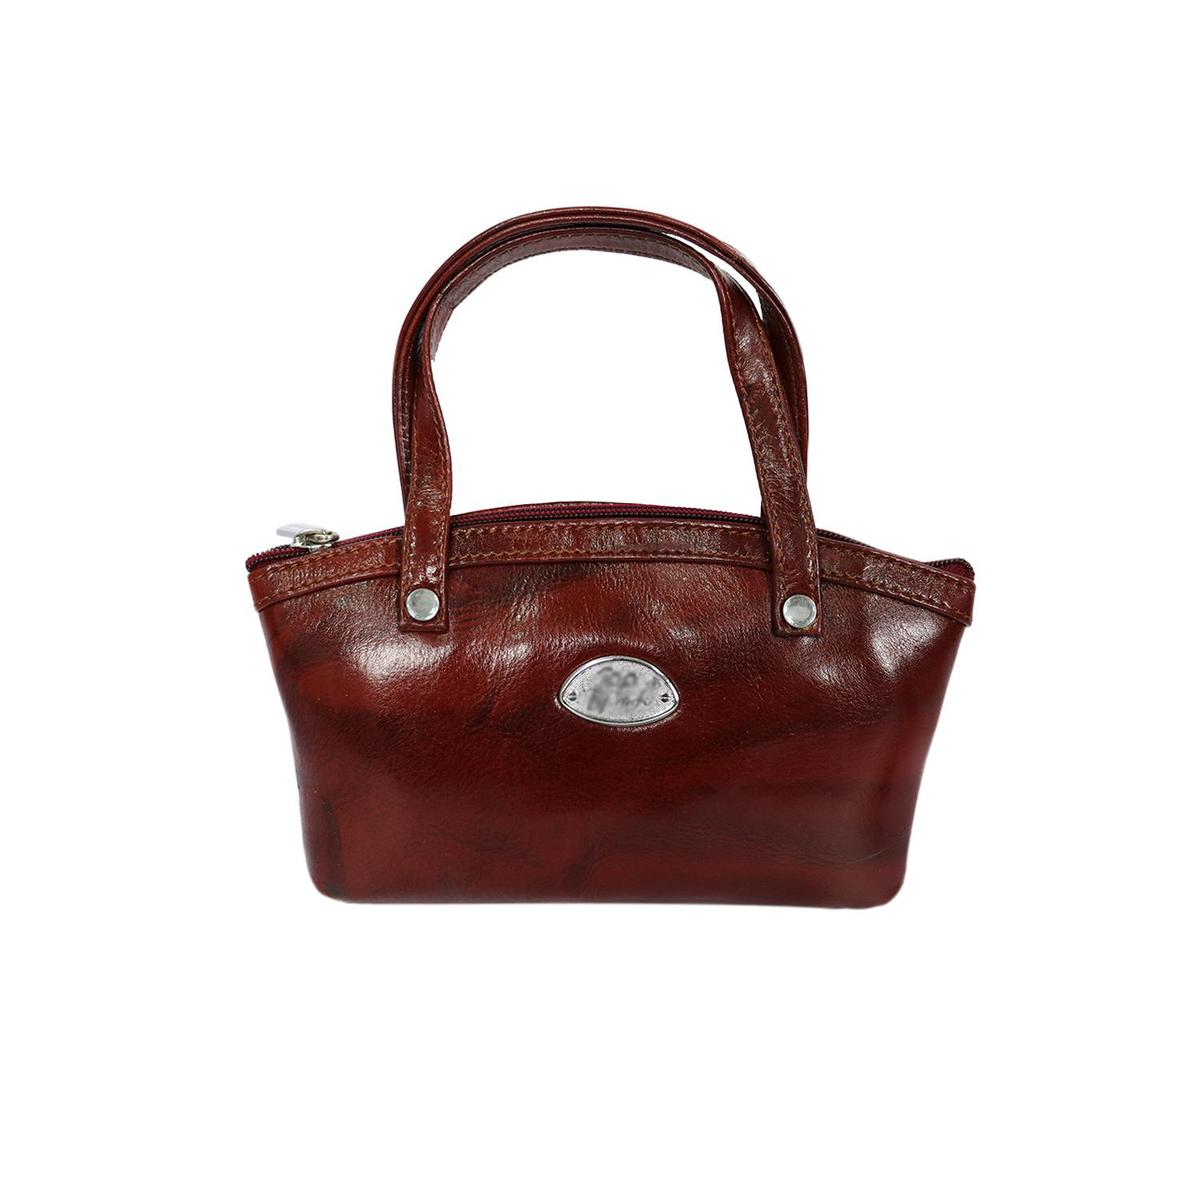 Lelys - Unique Pattern Pure Leather Hand Bag For Women/Girls - Brown